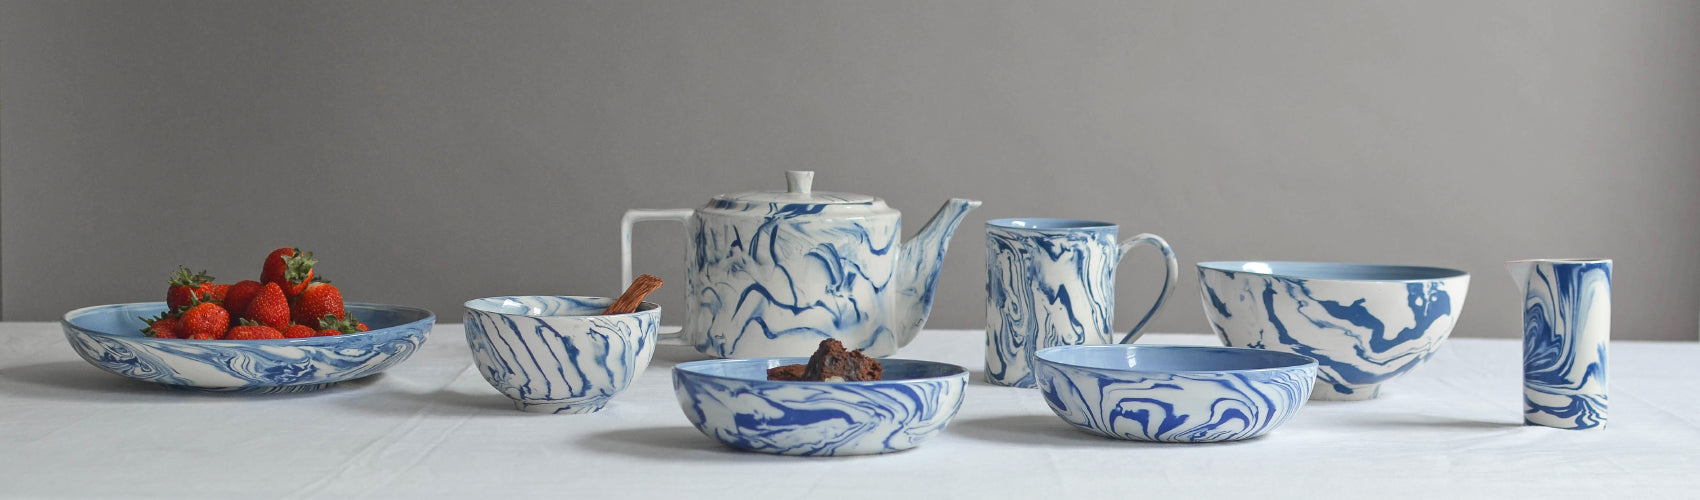 Nom Living Marbled Ceramic Blue and White Collection Header